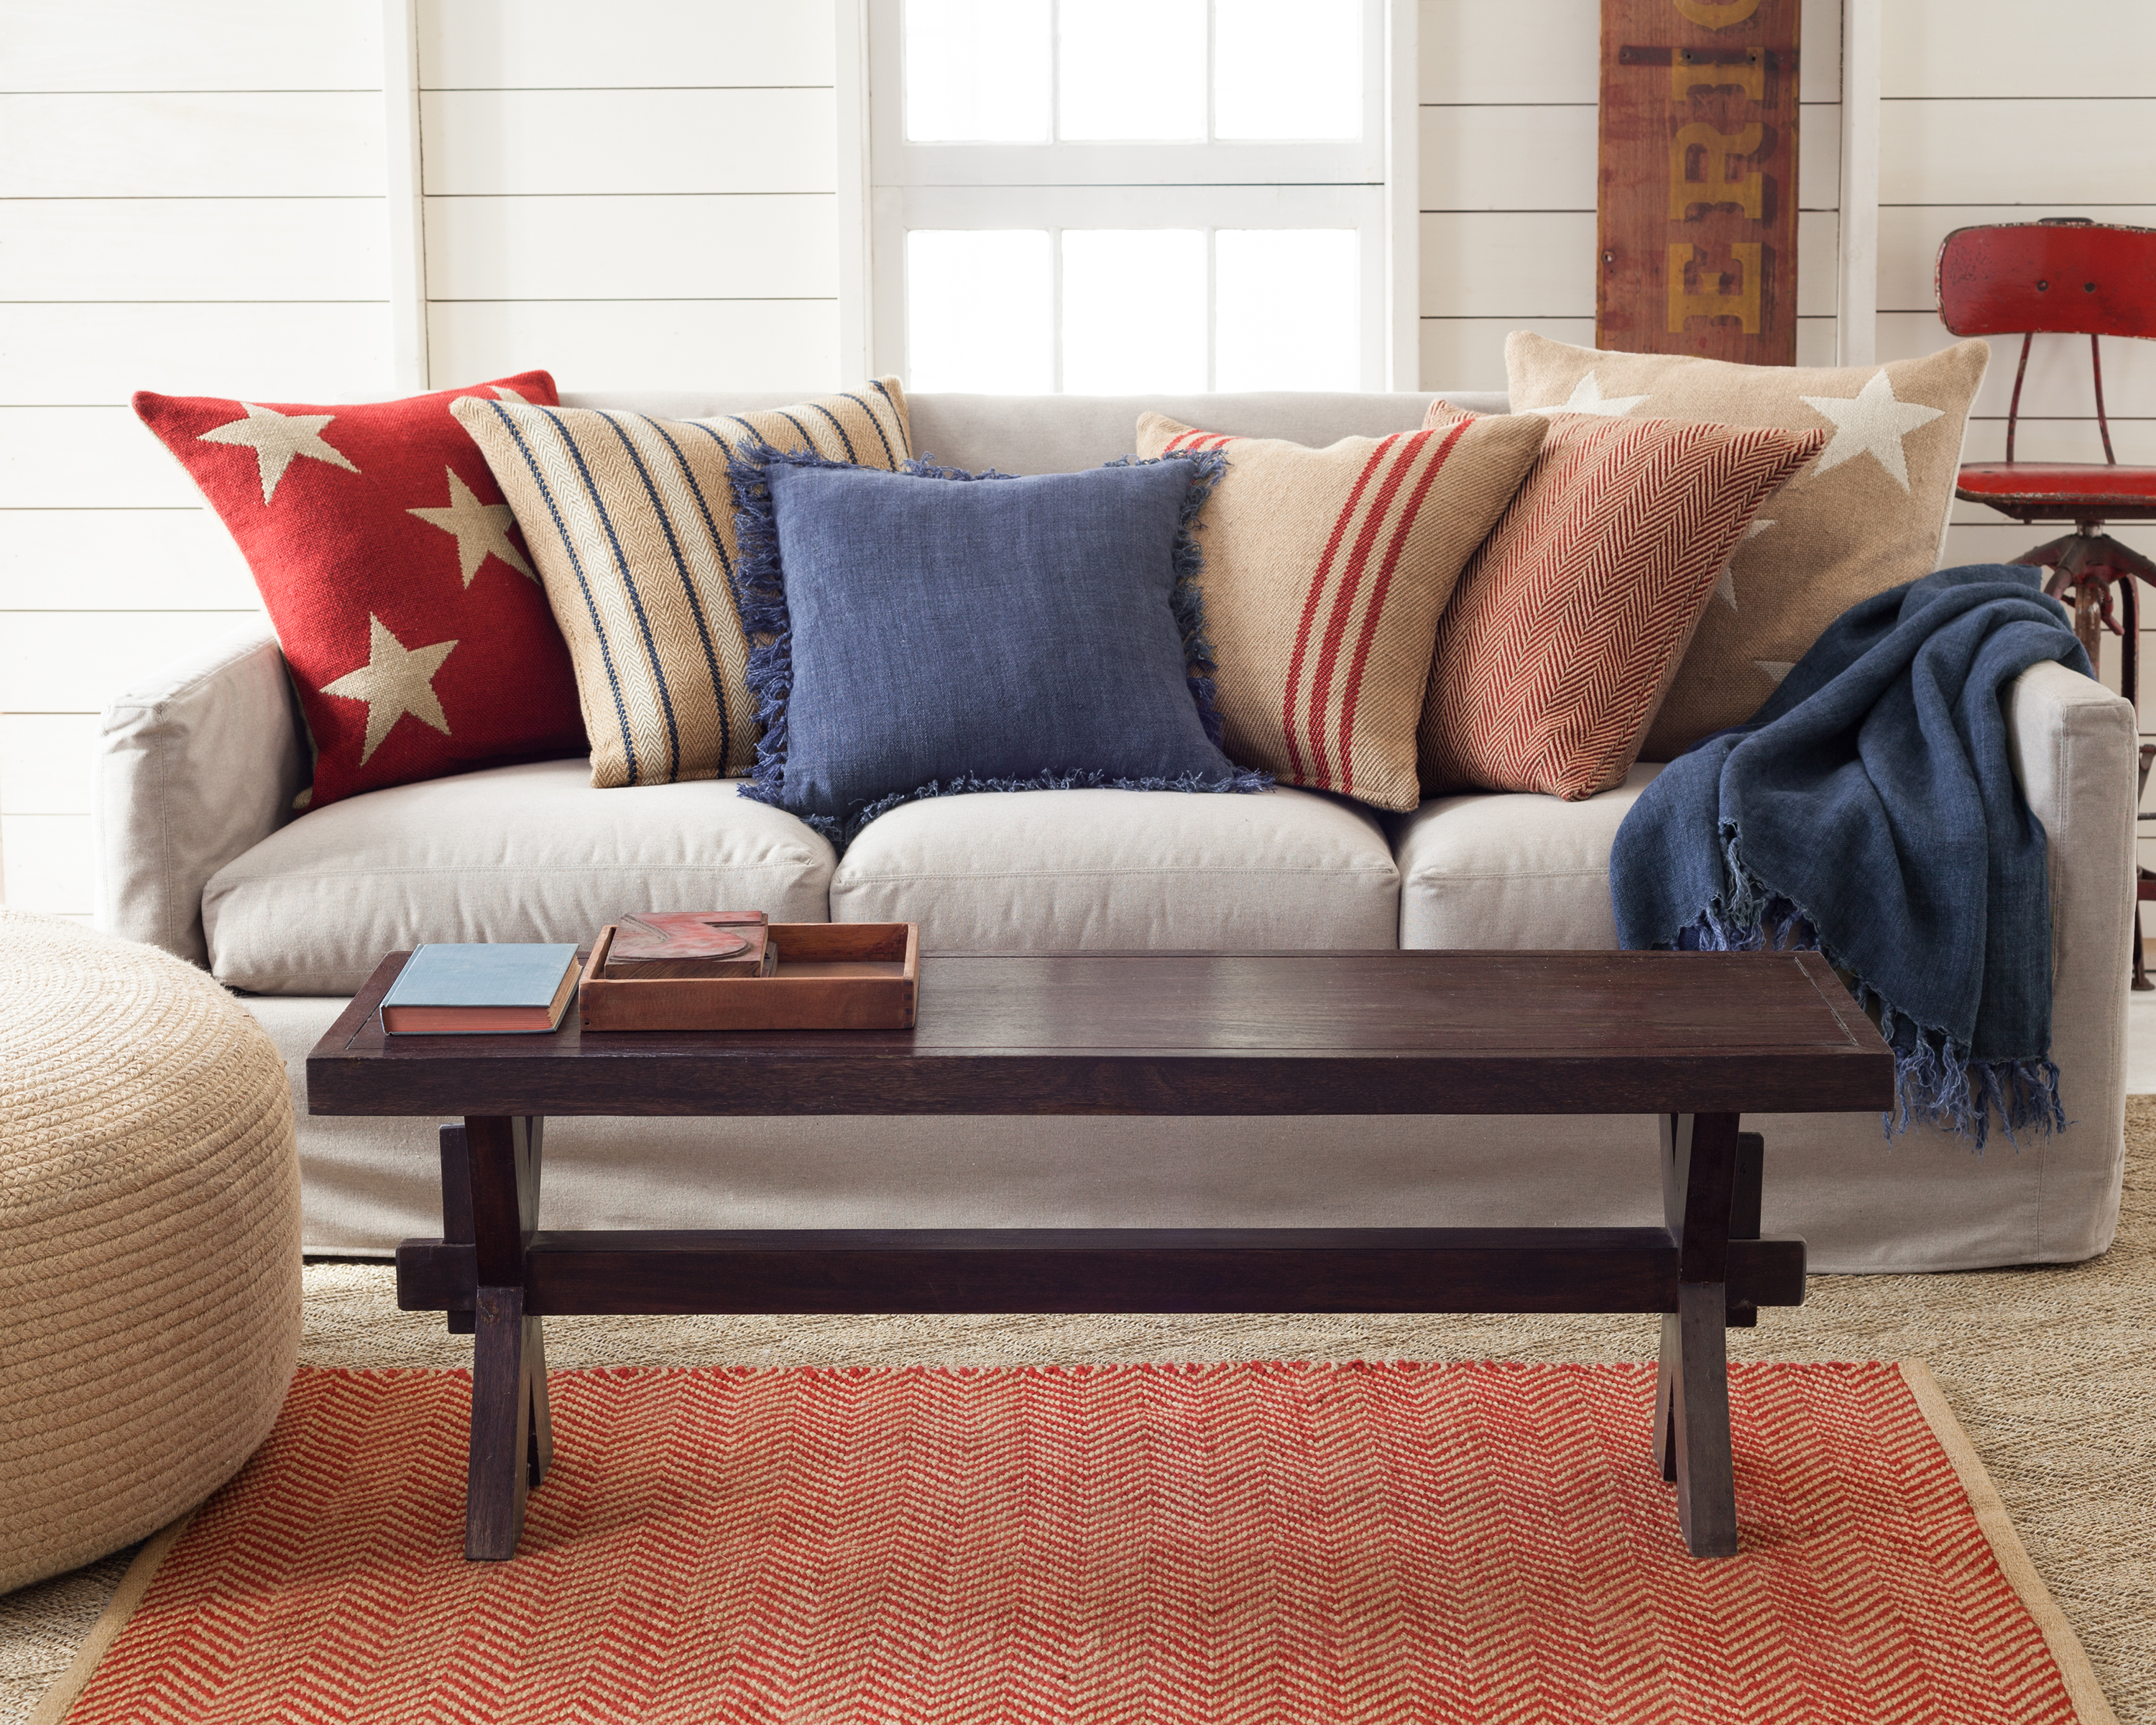 Casual-Chic Decorating With Red, White, And Blue